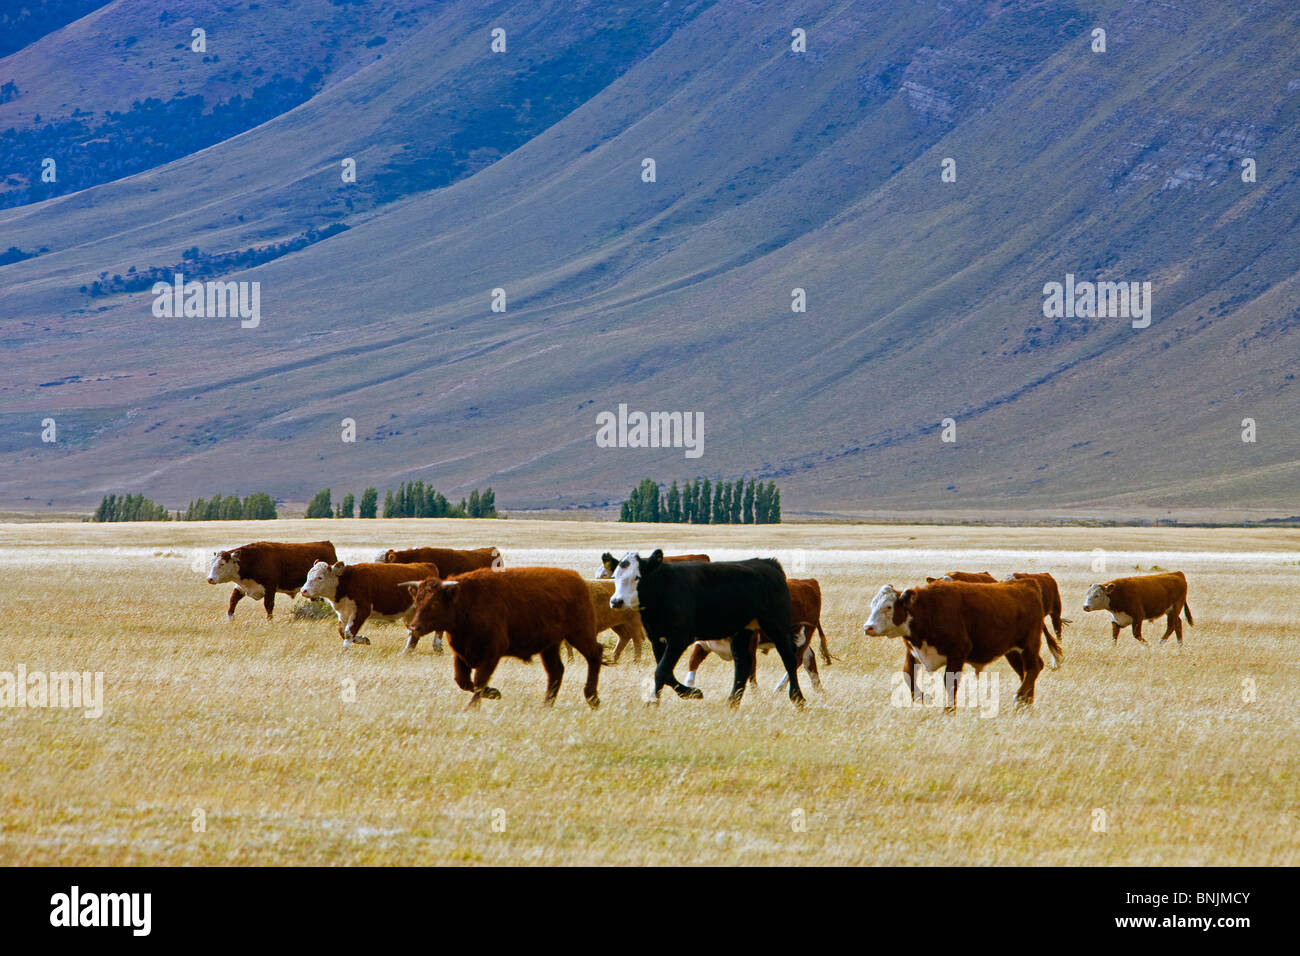 Chile South America March 2009 Chilean Patagonia cows cattle grassland mountains mountain landscape scenery agriculture - Stock Image